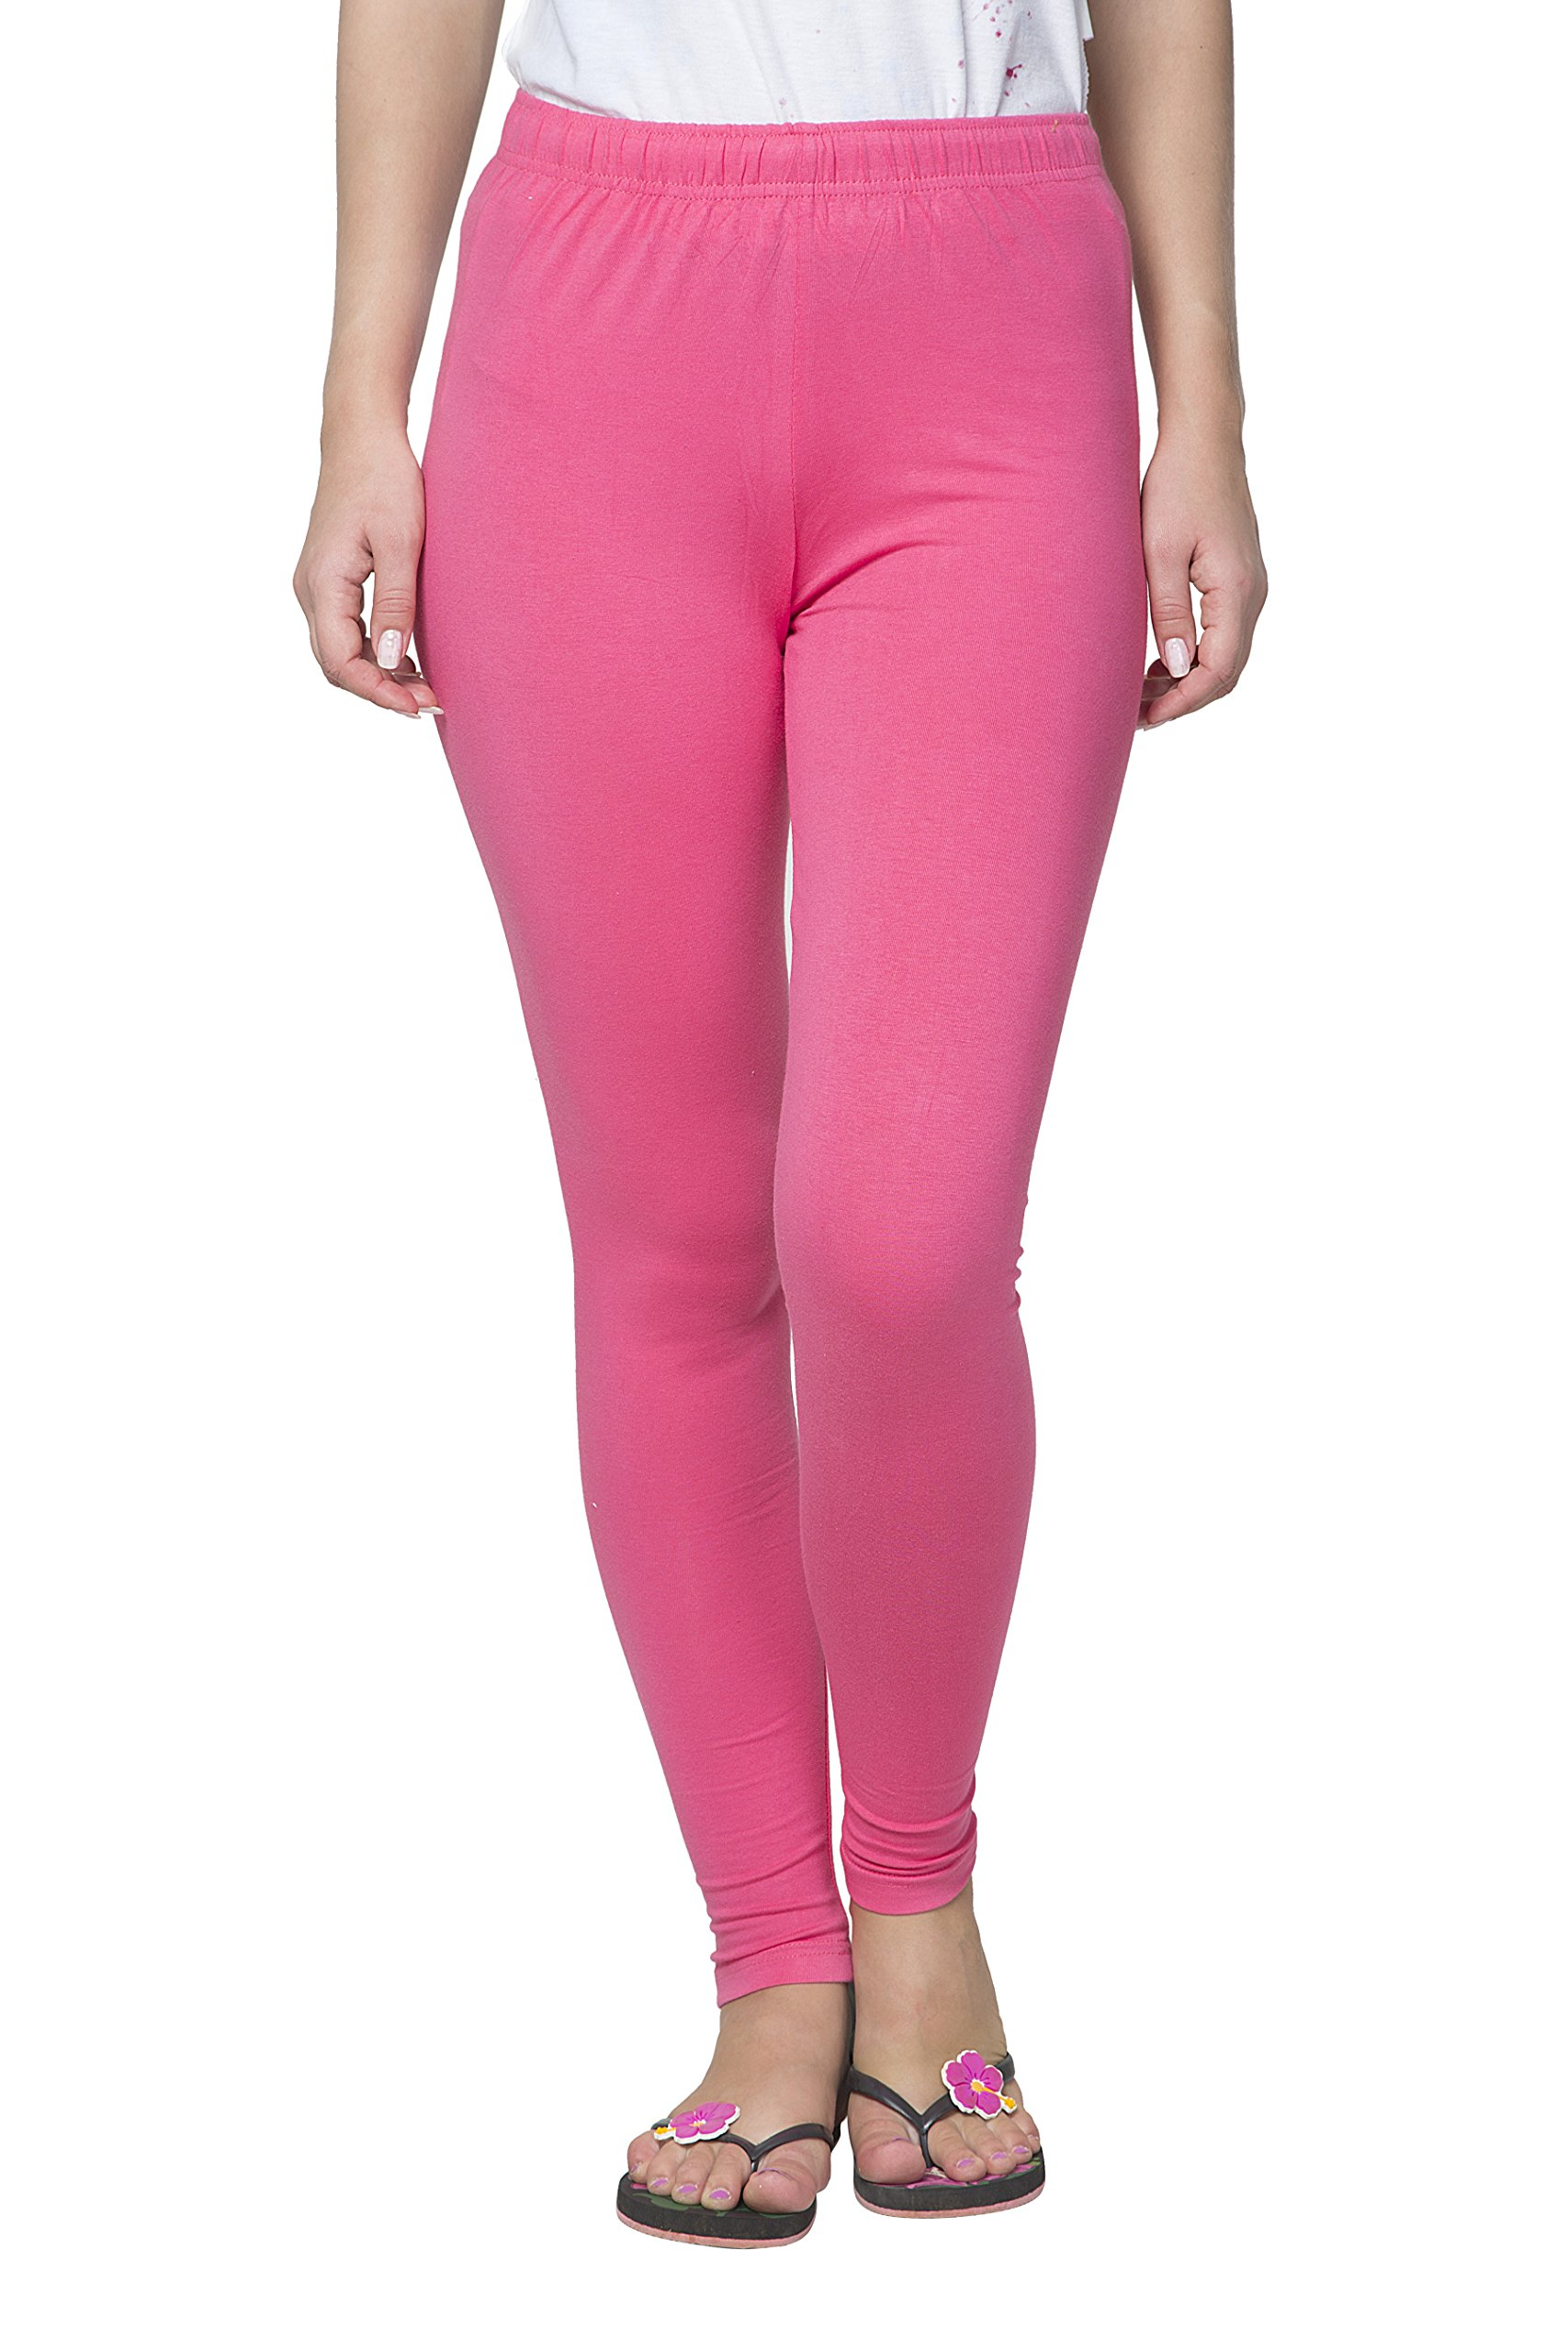 Clifton Women's Cotton Spandex Fine Jersey Leggings Pack Of 4-Assorted-2-XL by Clifton (Image #5)